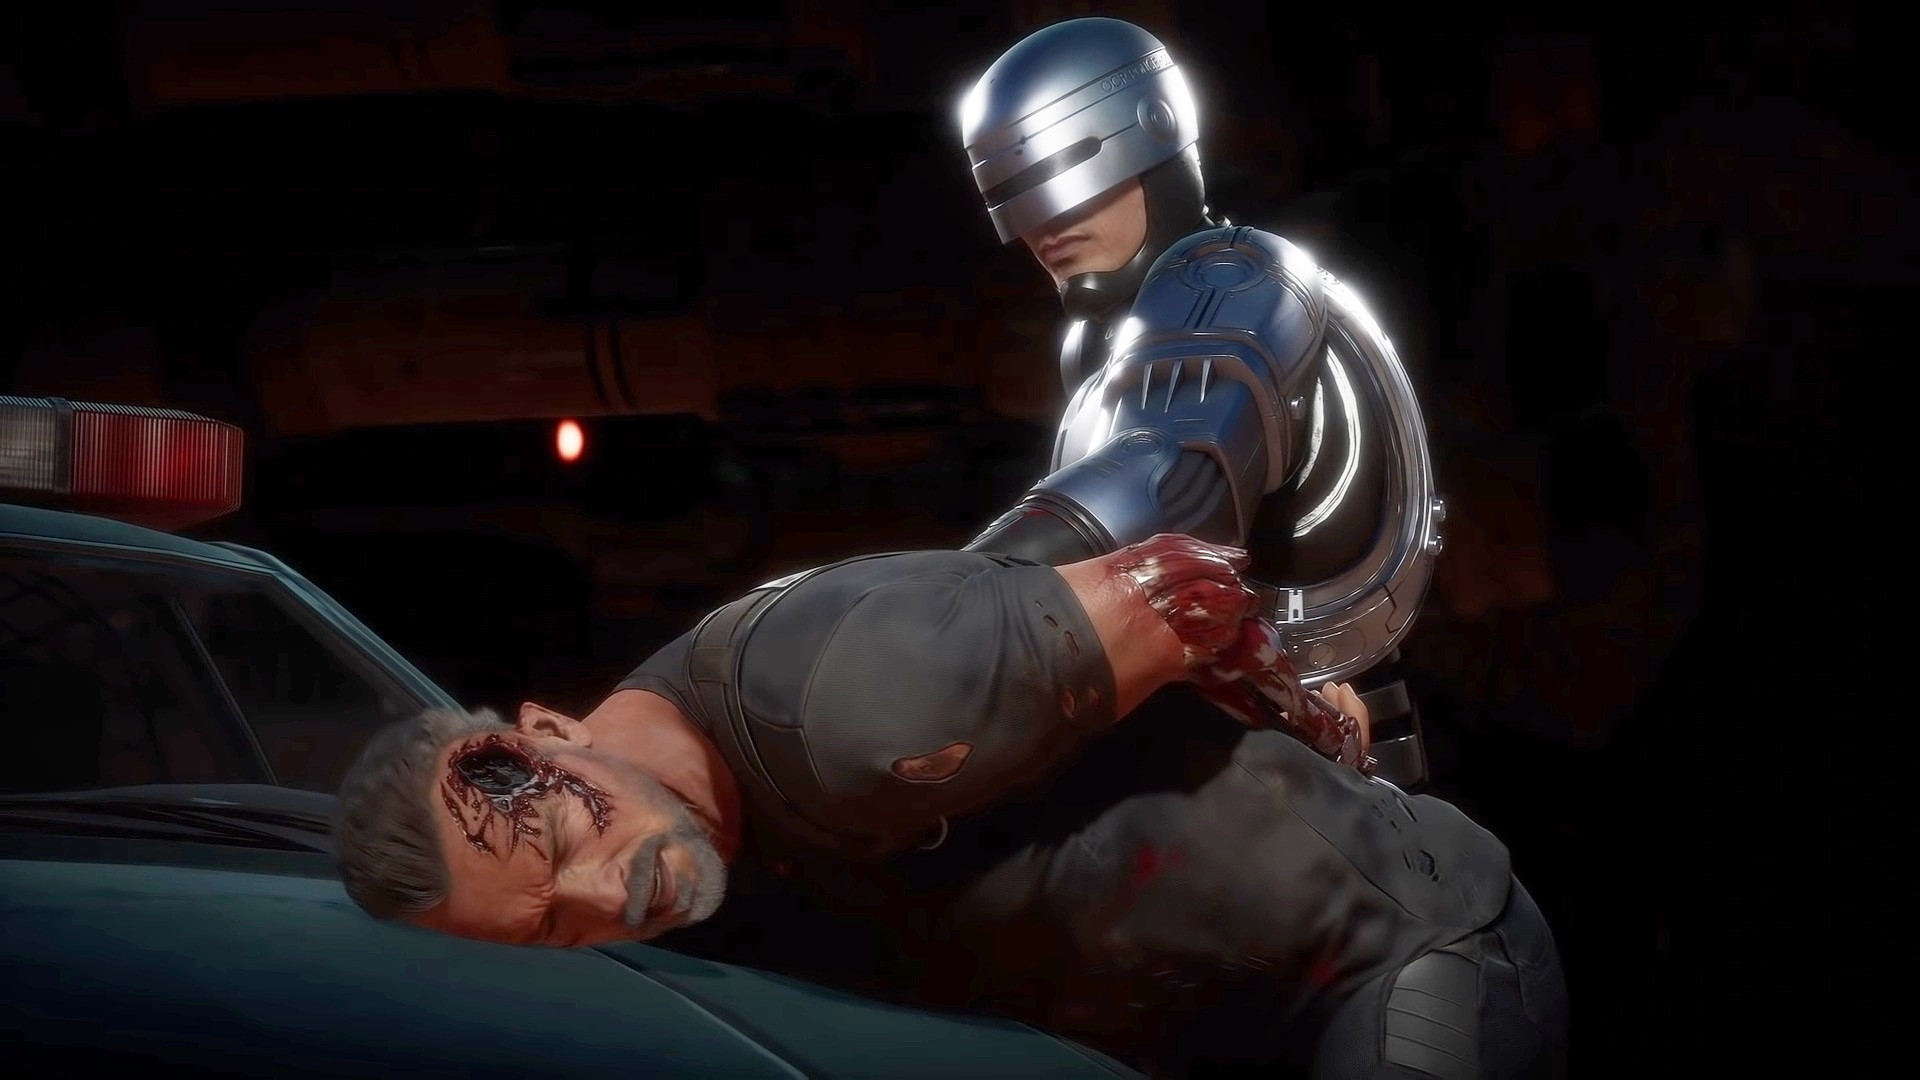 New Mortal Kombat 11: Aftermath Trailer Debut Iconic Konfrontation Between RoboCop & The Terminator